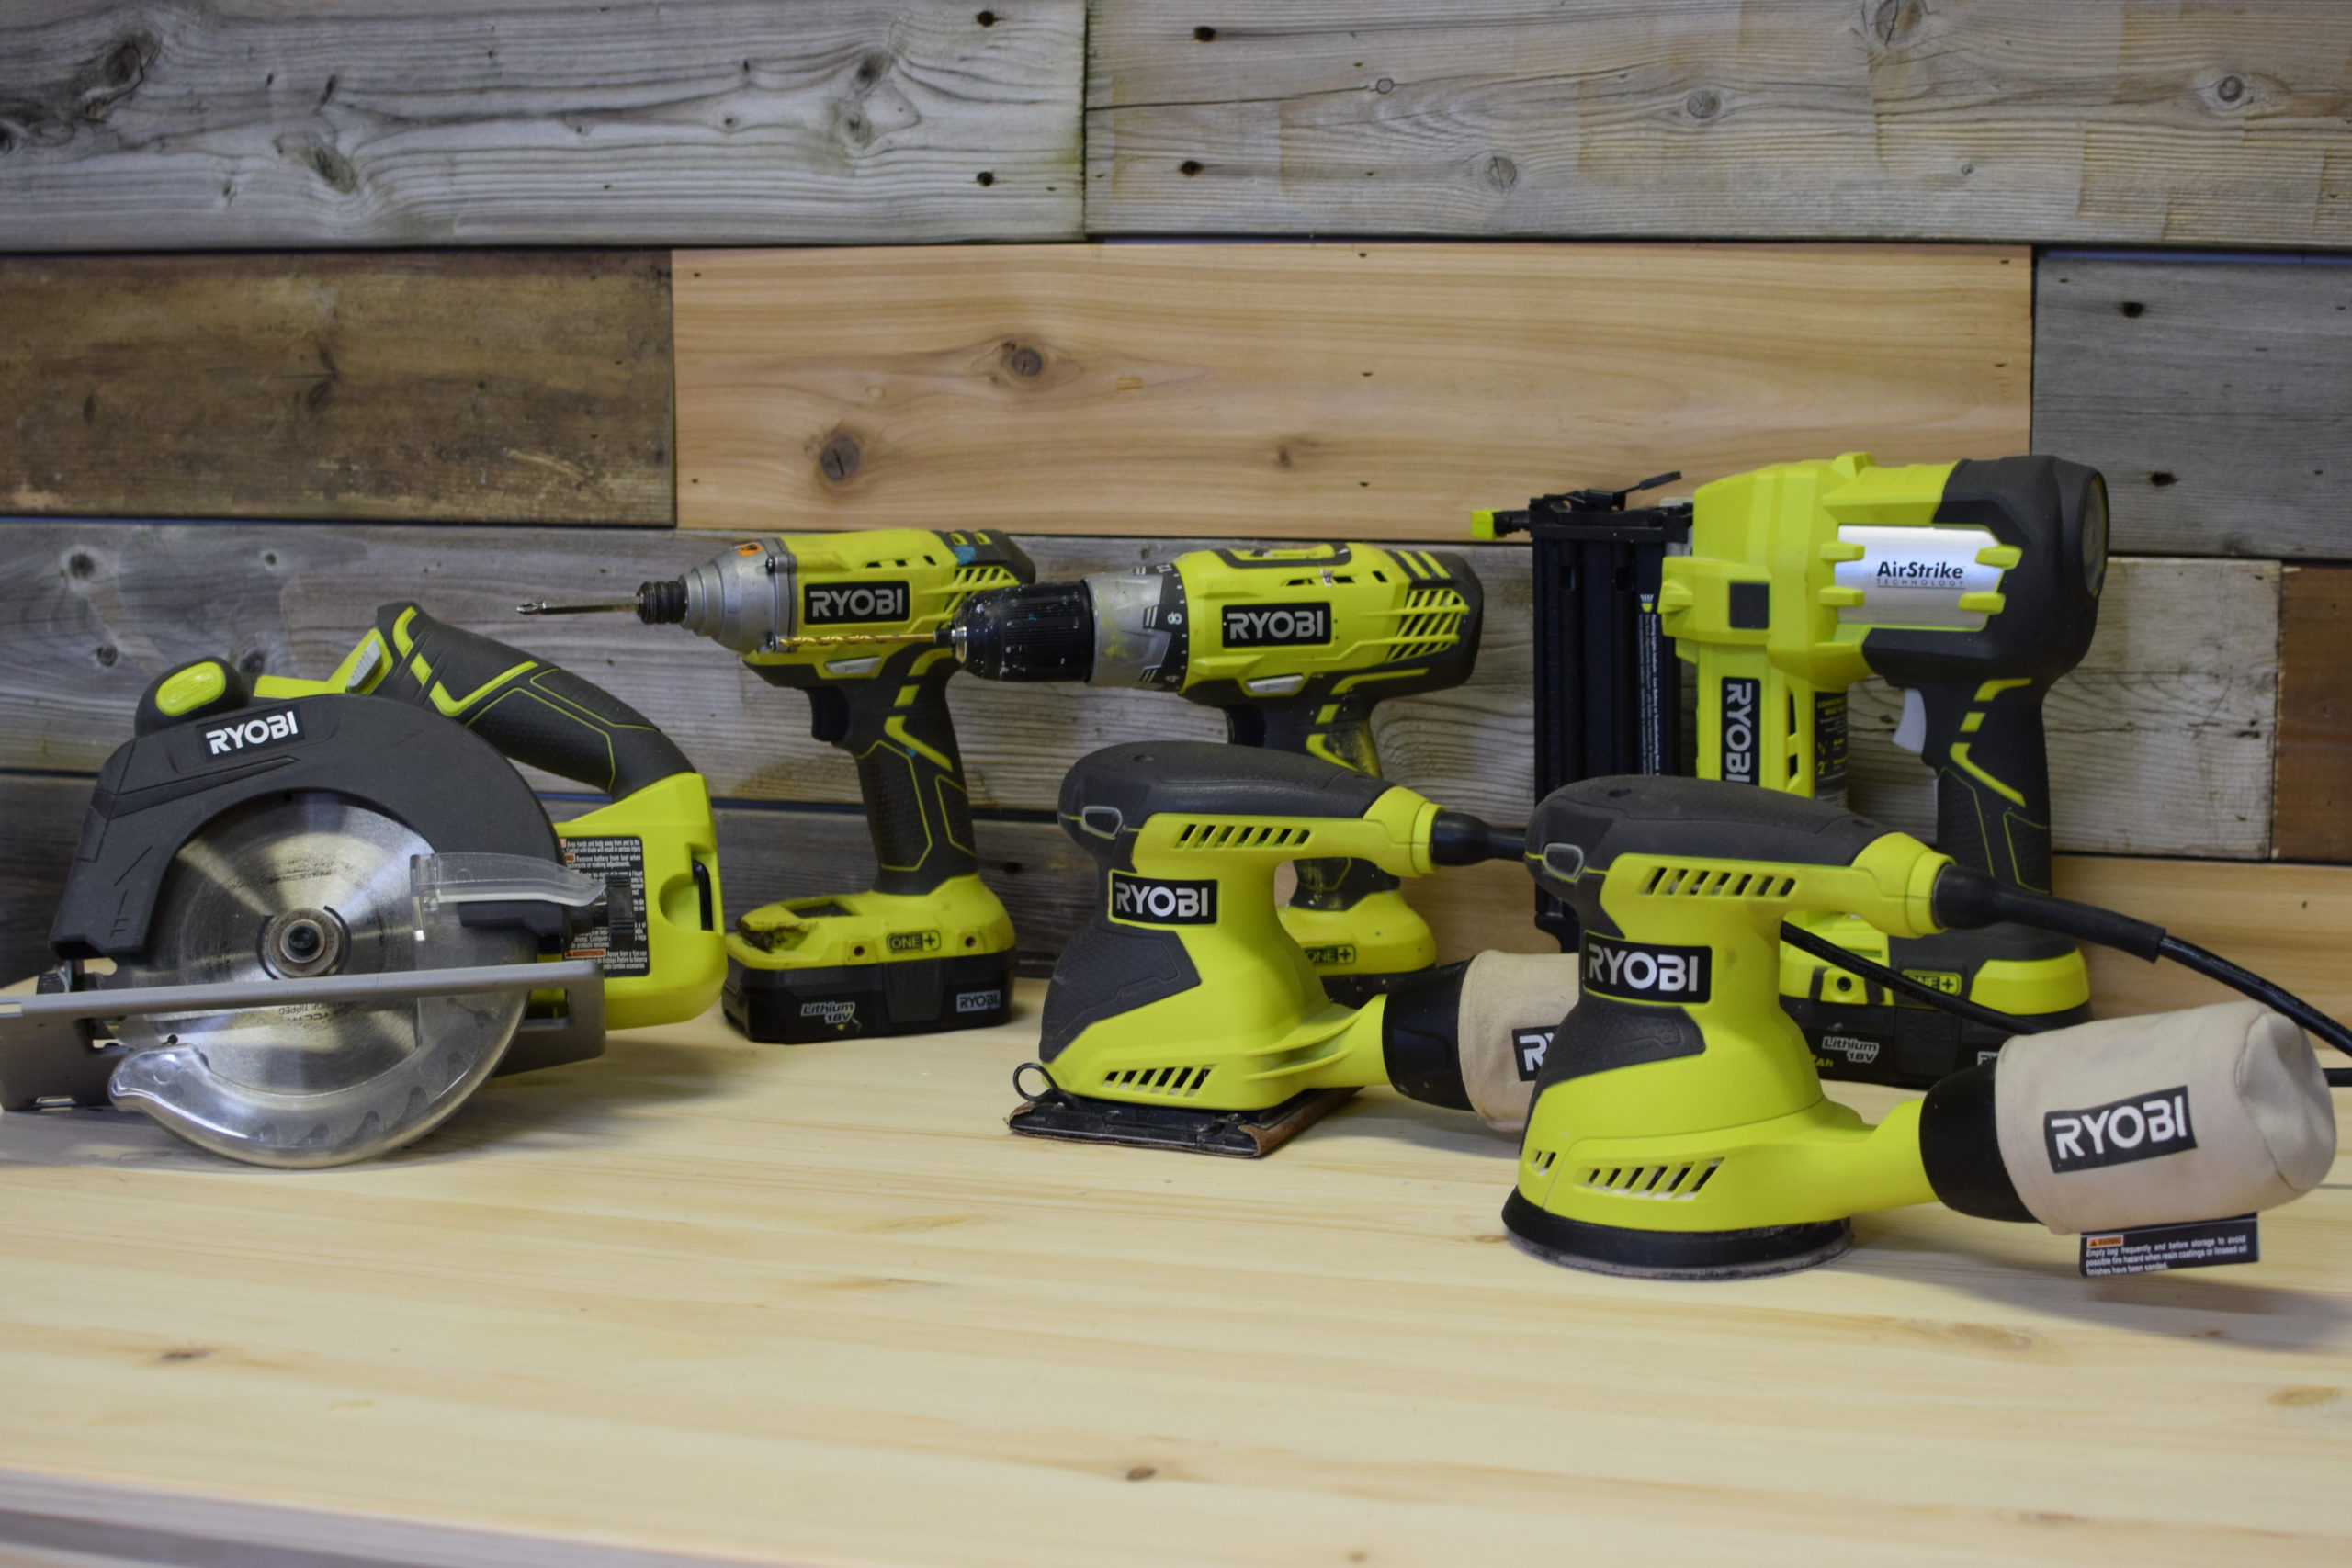 group shot of Ryobi tools on a wood table against rustic wood background